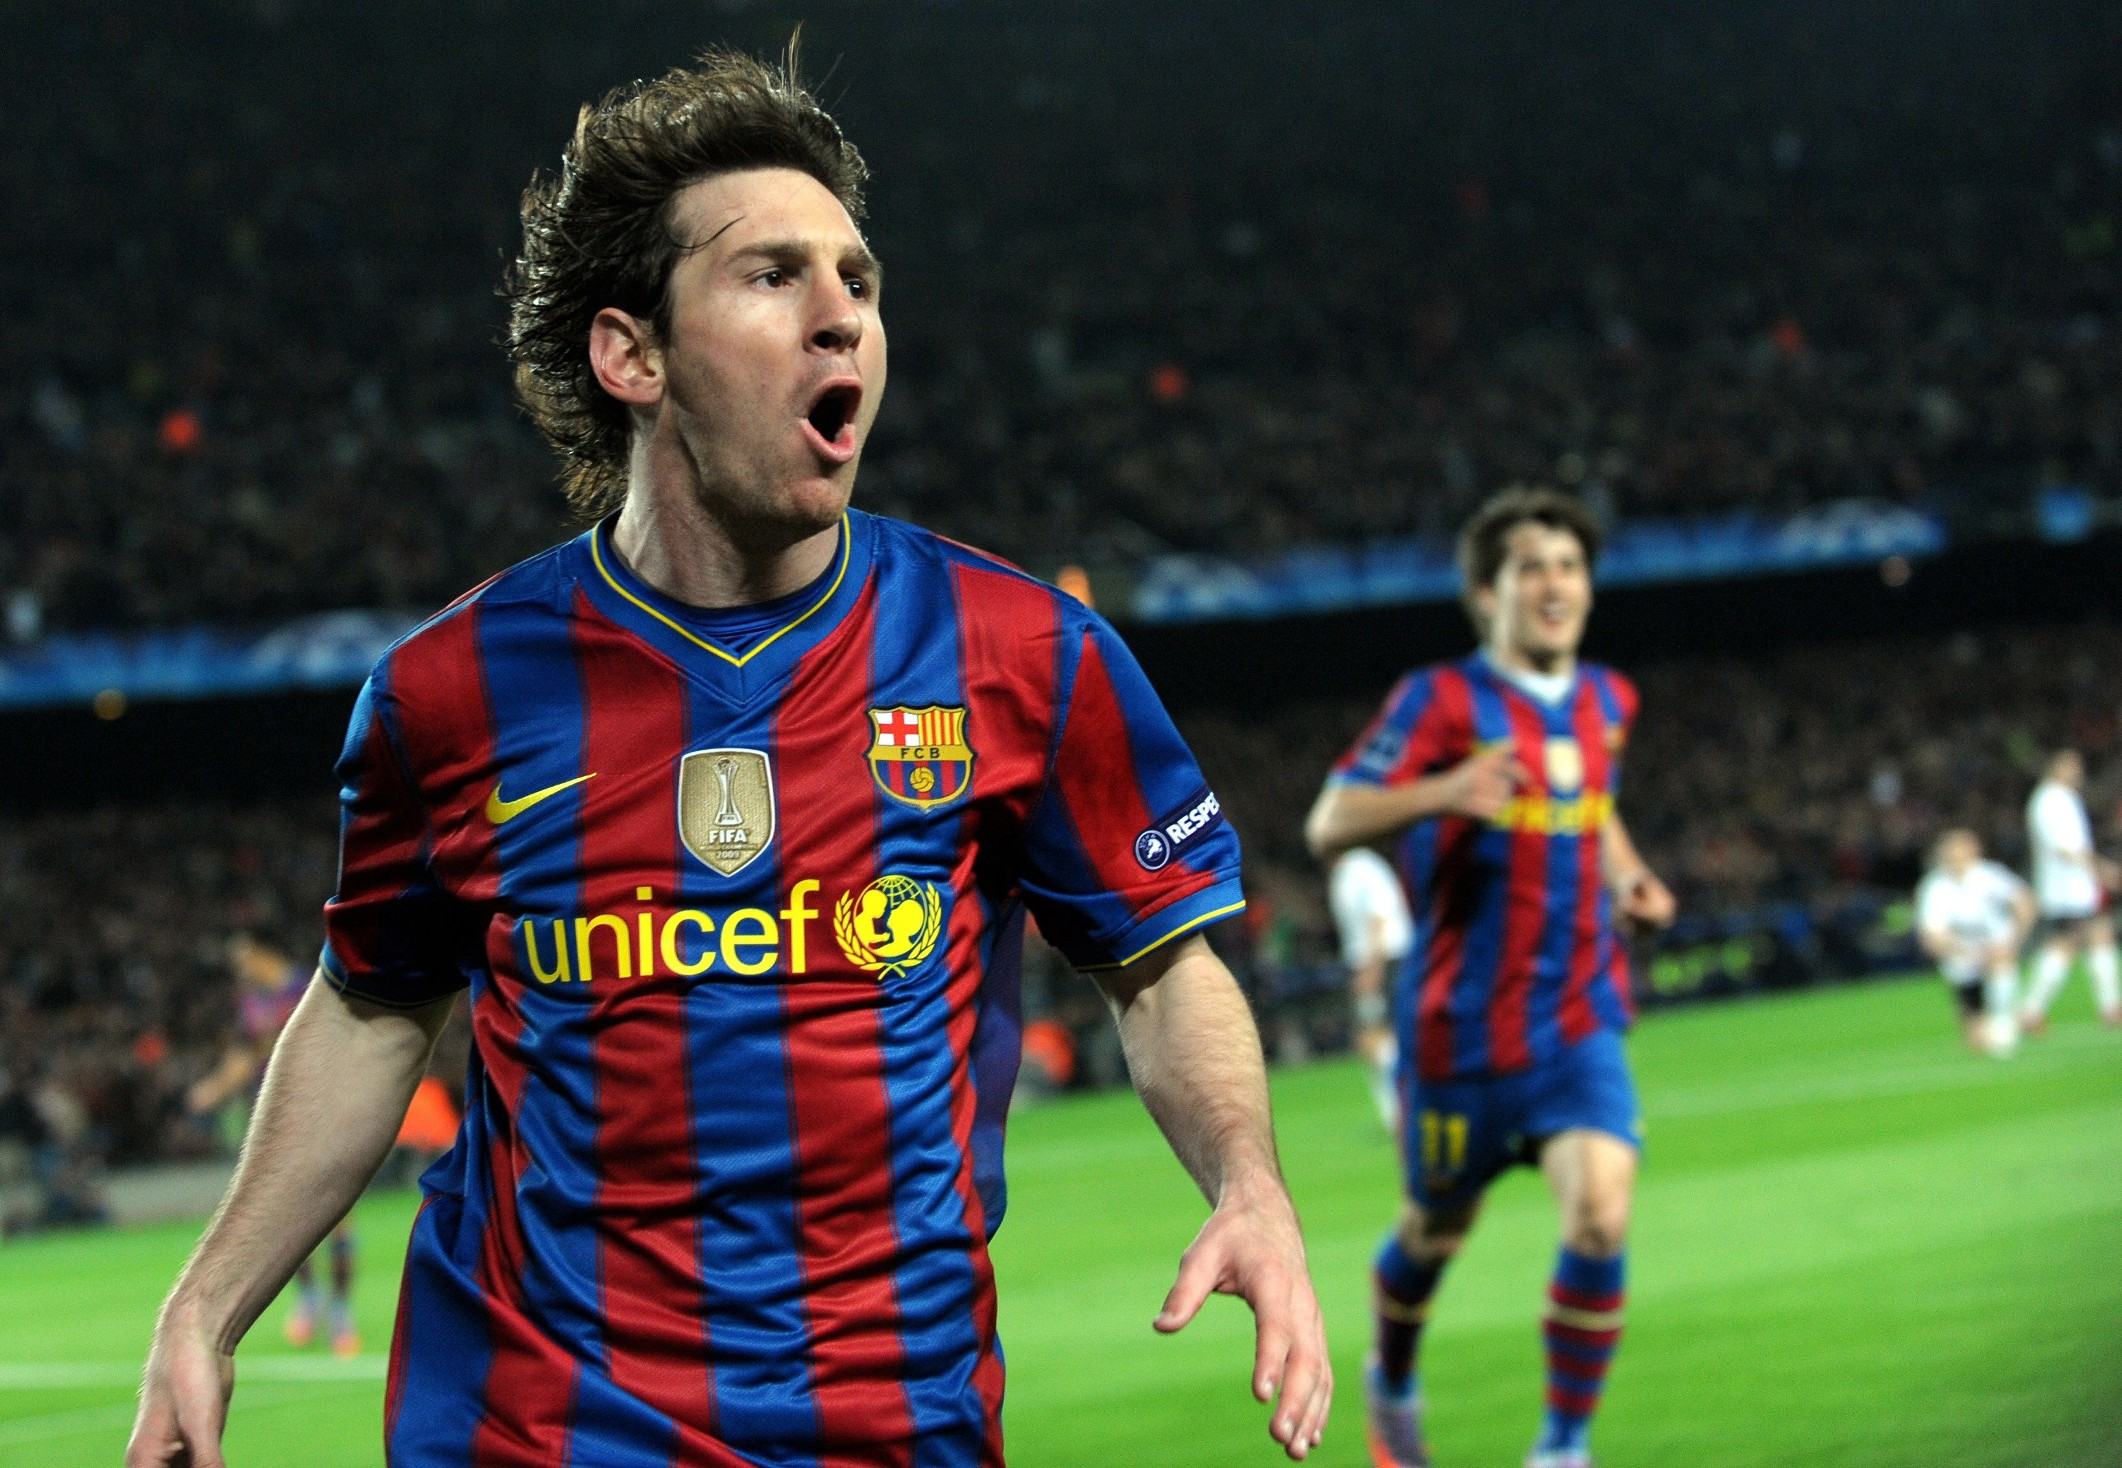 138 Lionel Messi Hd Wallpapers Background Images Wallpaper Abyss